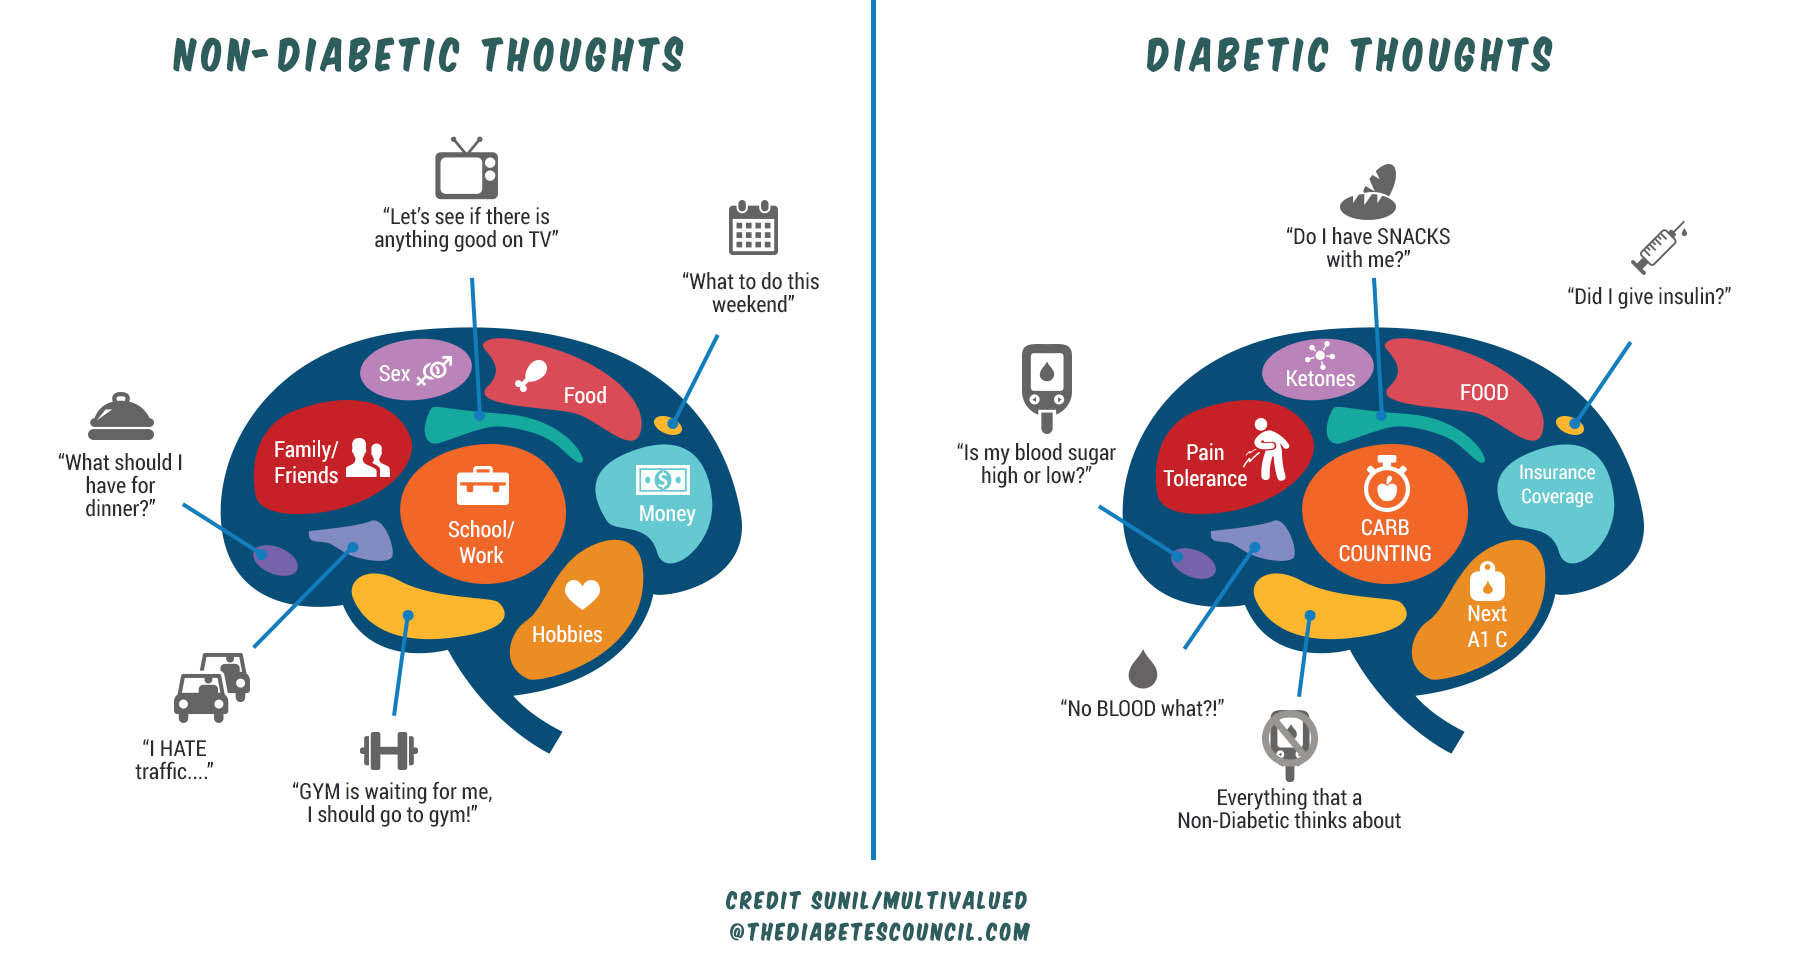 dating-tips-diabetic-person-vs-non-diabetic-person-thoughts-heartalytics-dating-experts-tawkify-matchmaing.jpg